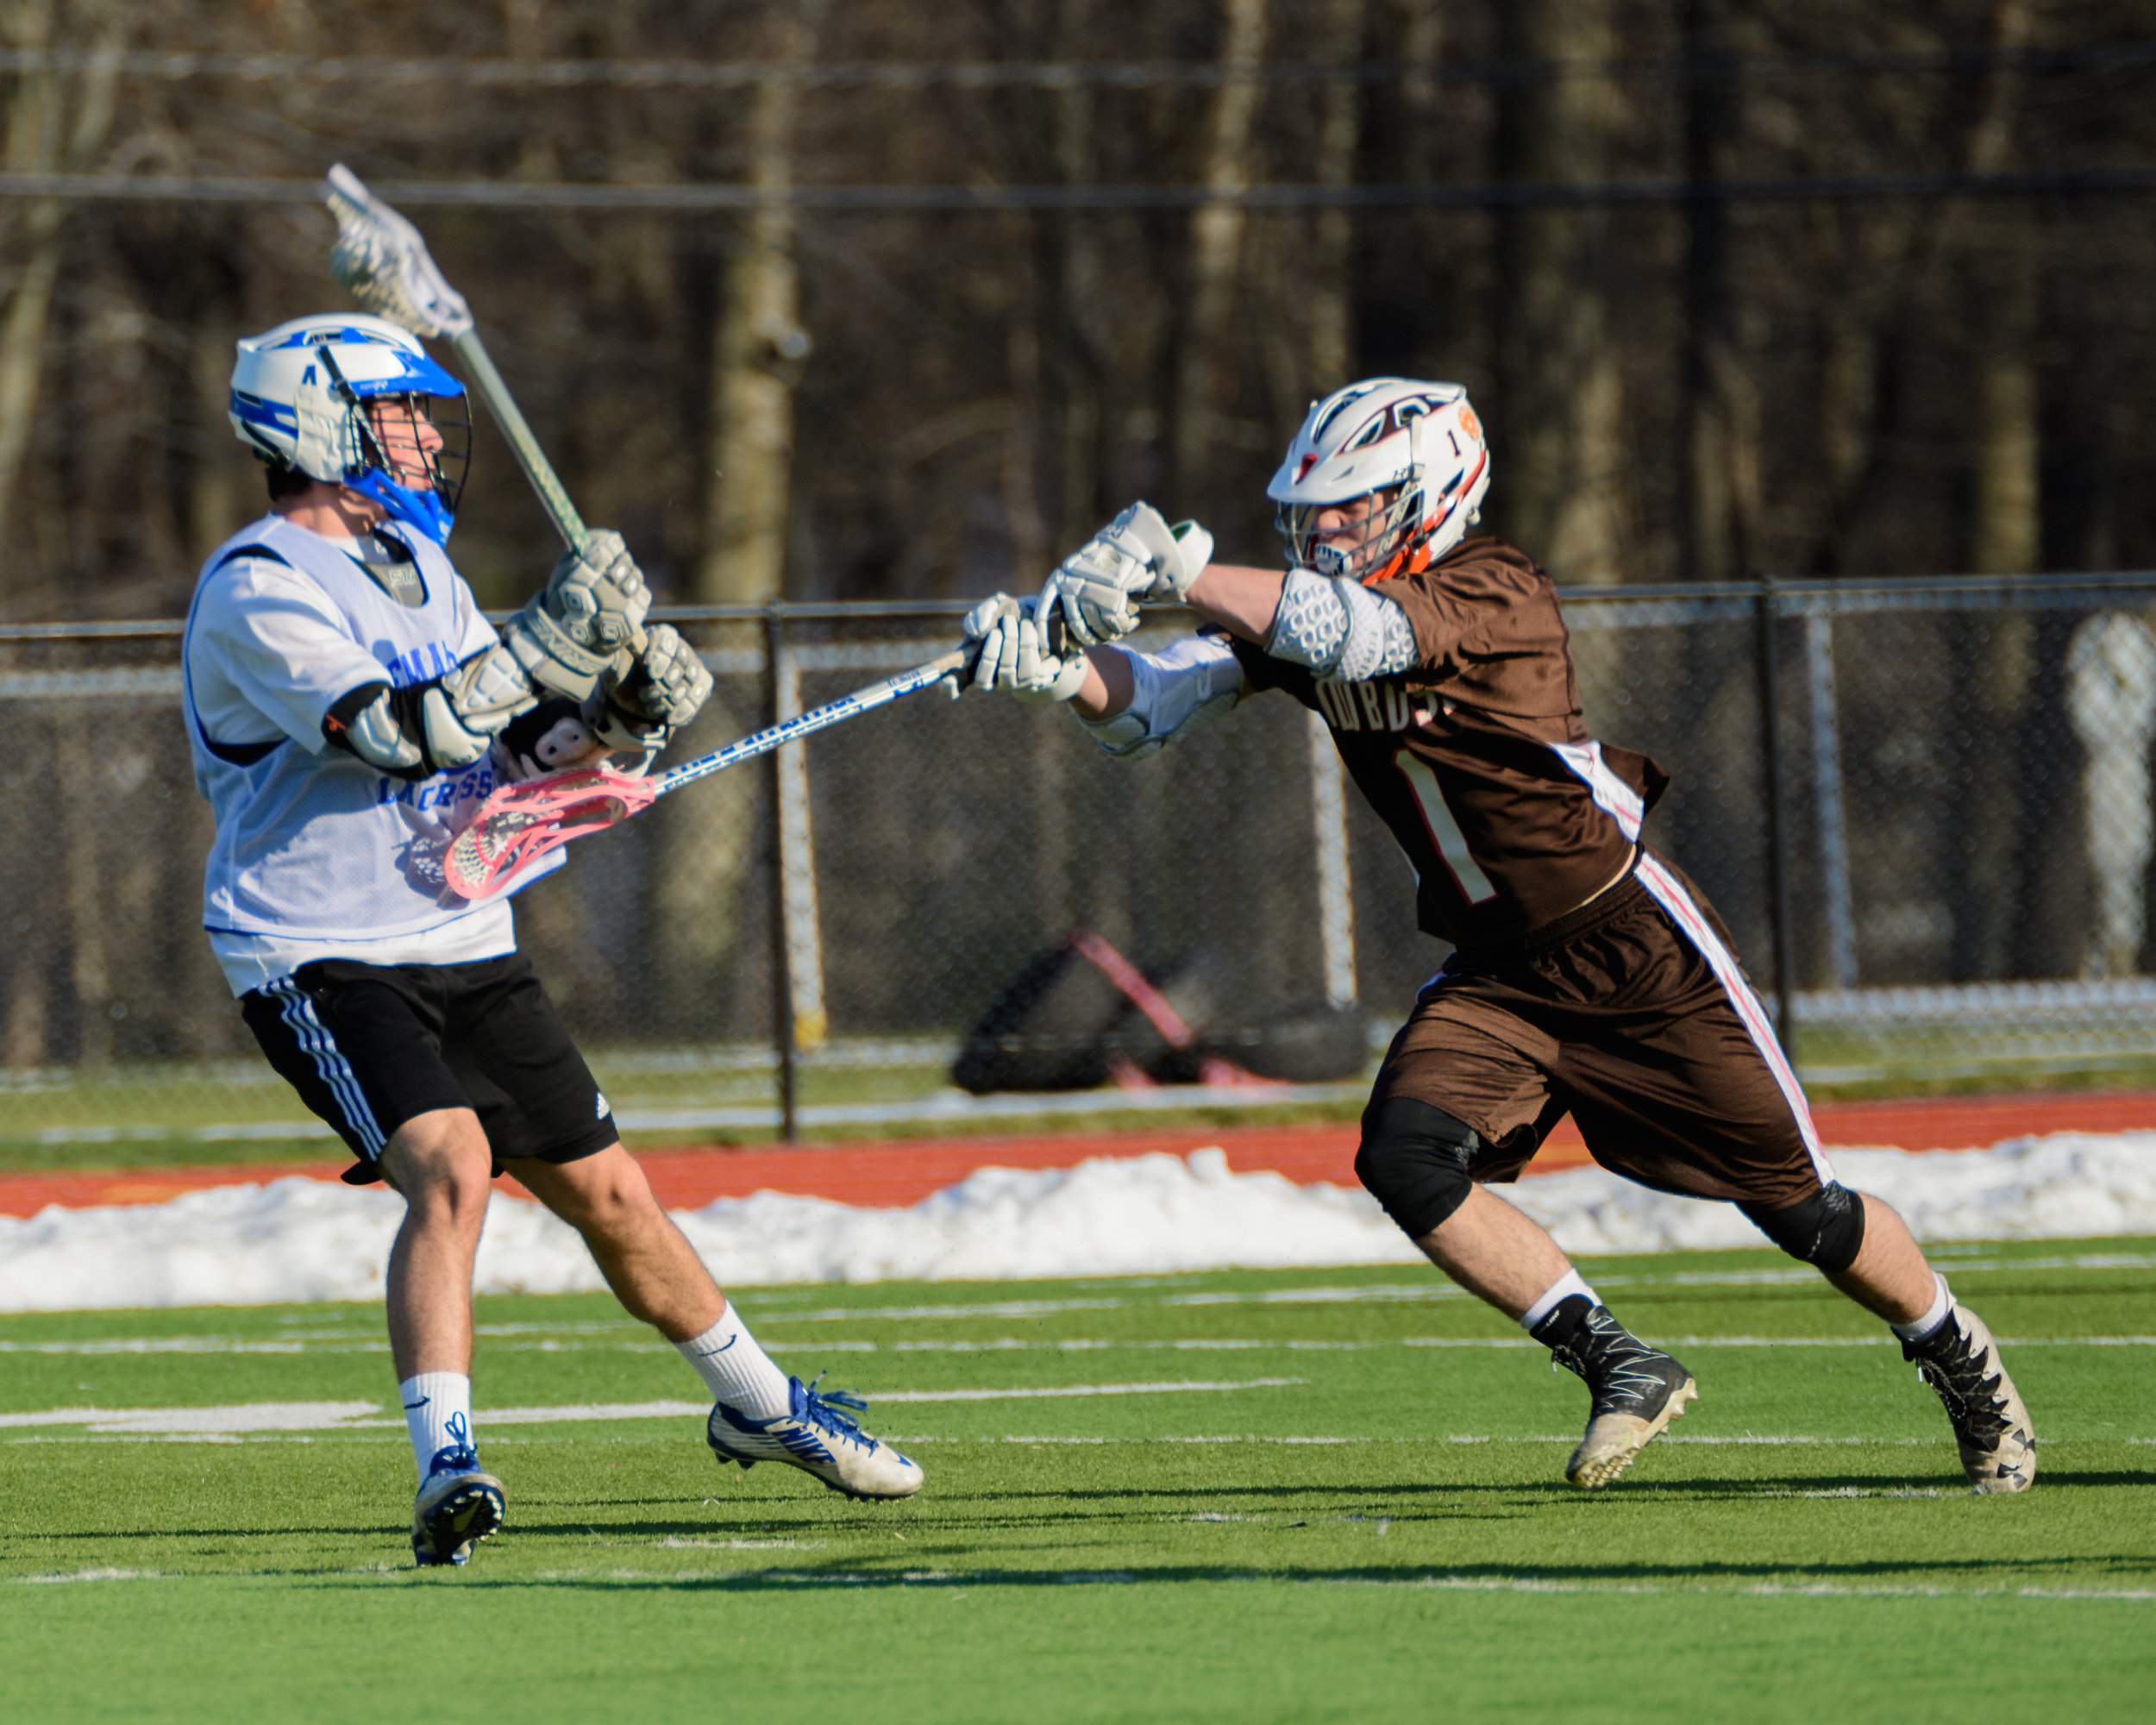 Northern-Valley-Demarest-HS-Lacrosse-03212017-0234.jpg